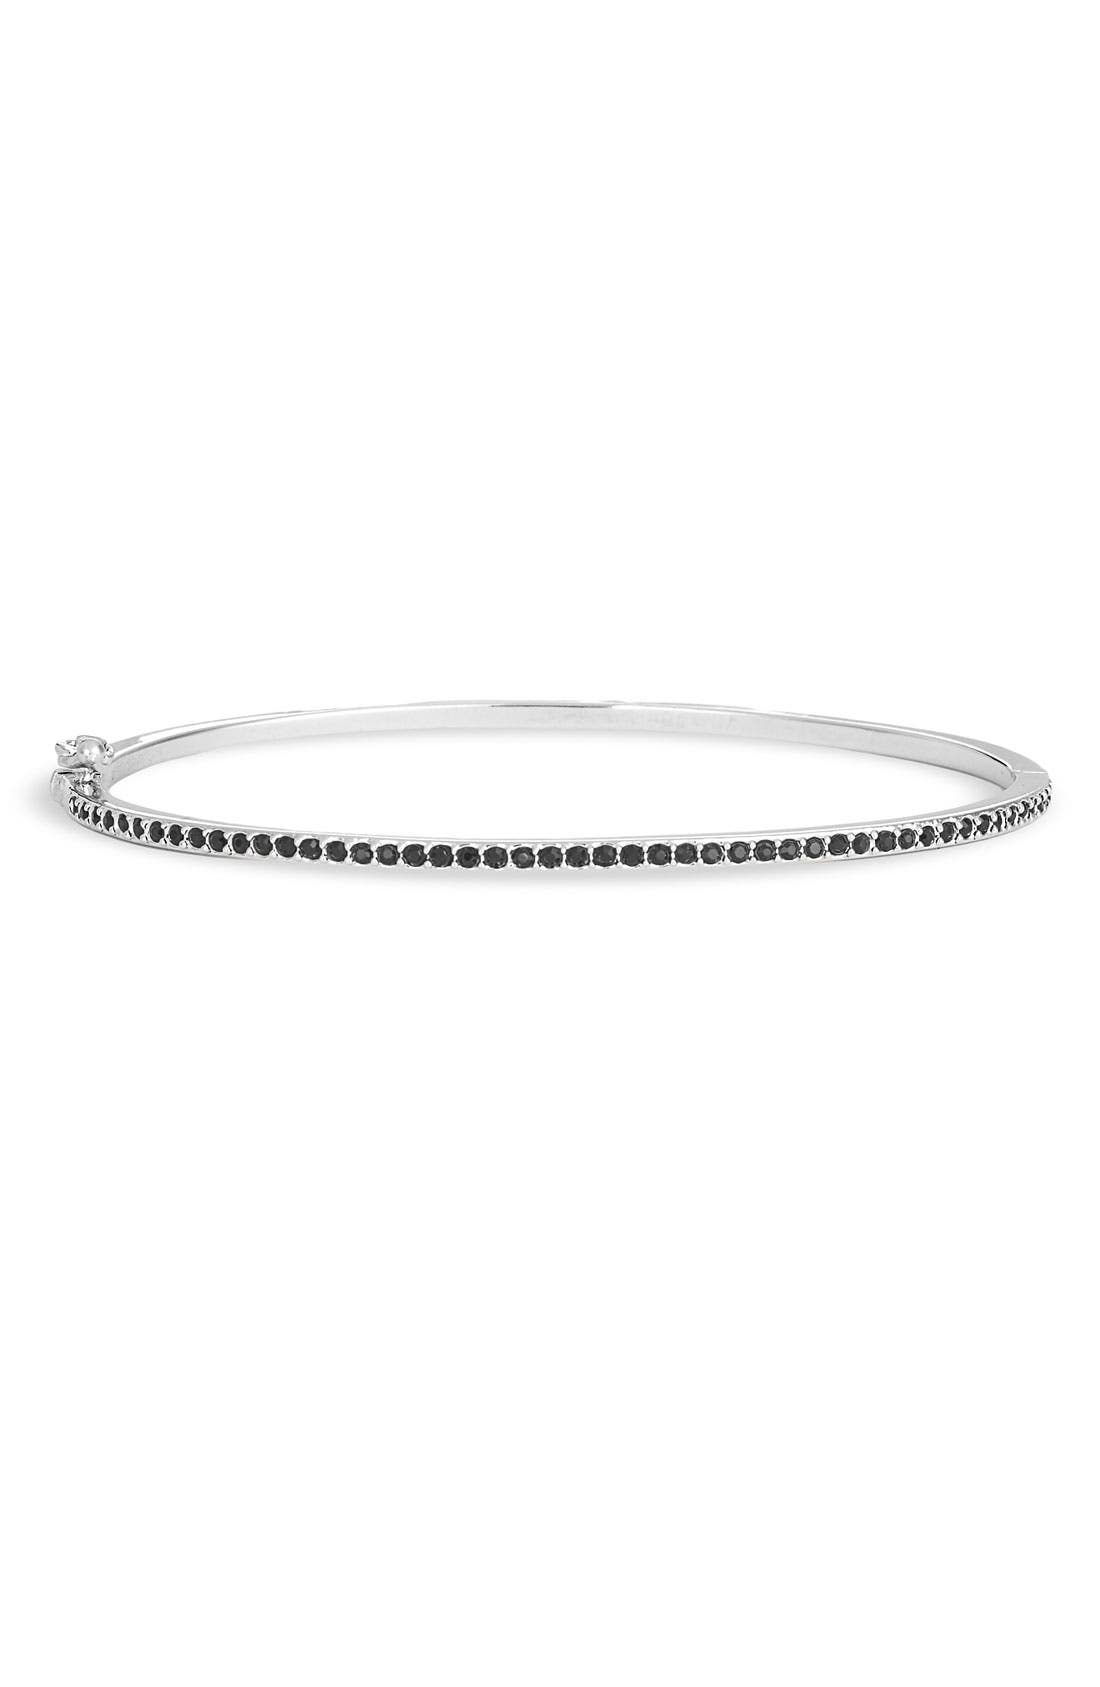 Main Image - Judith Jack Crystal Hinged Bangle